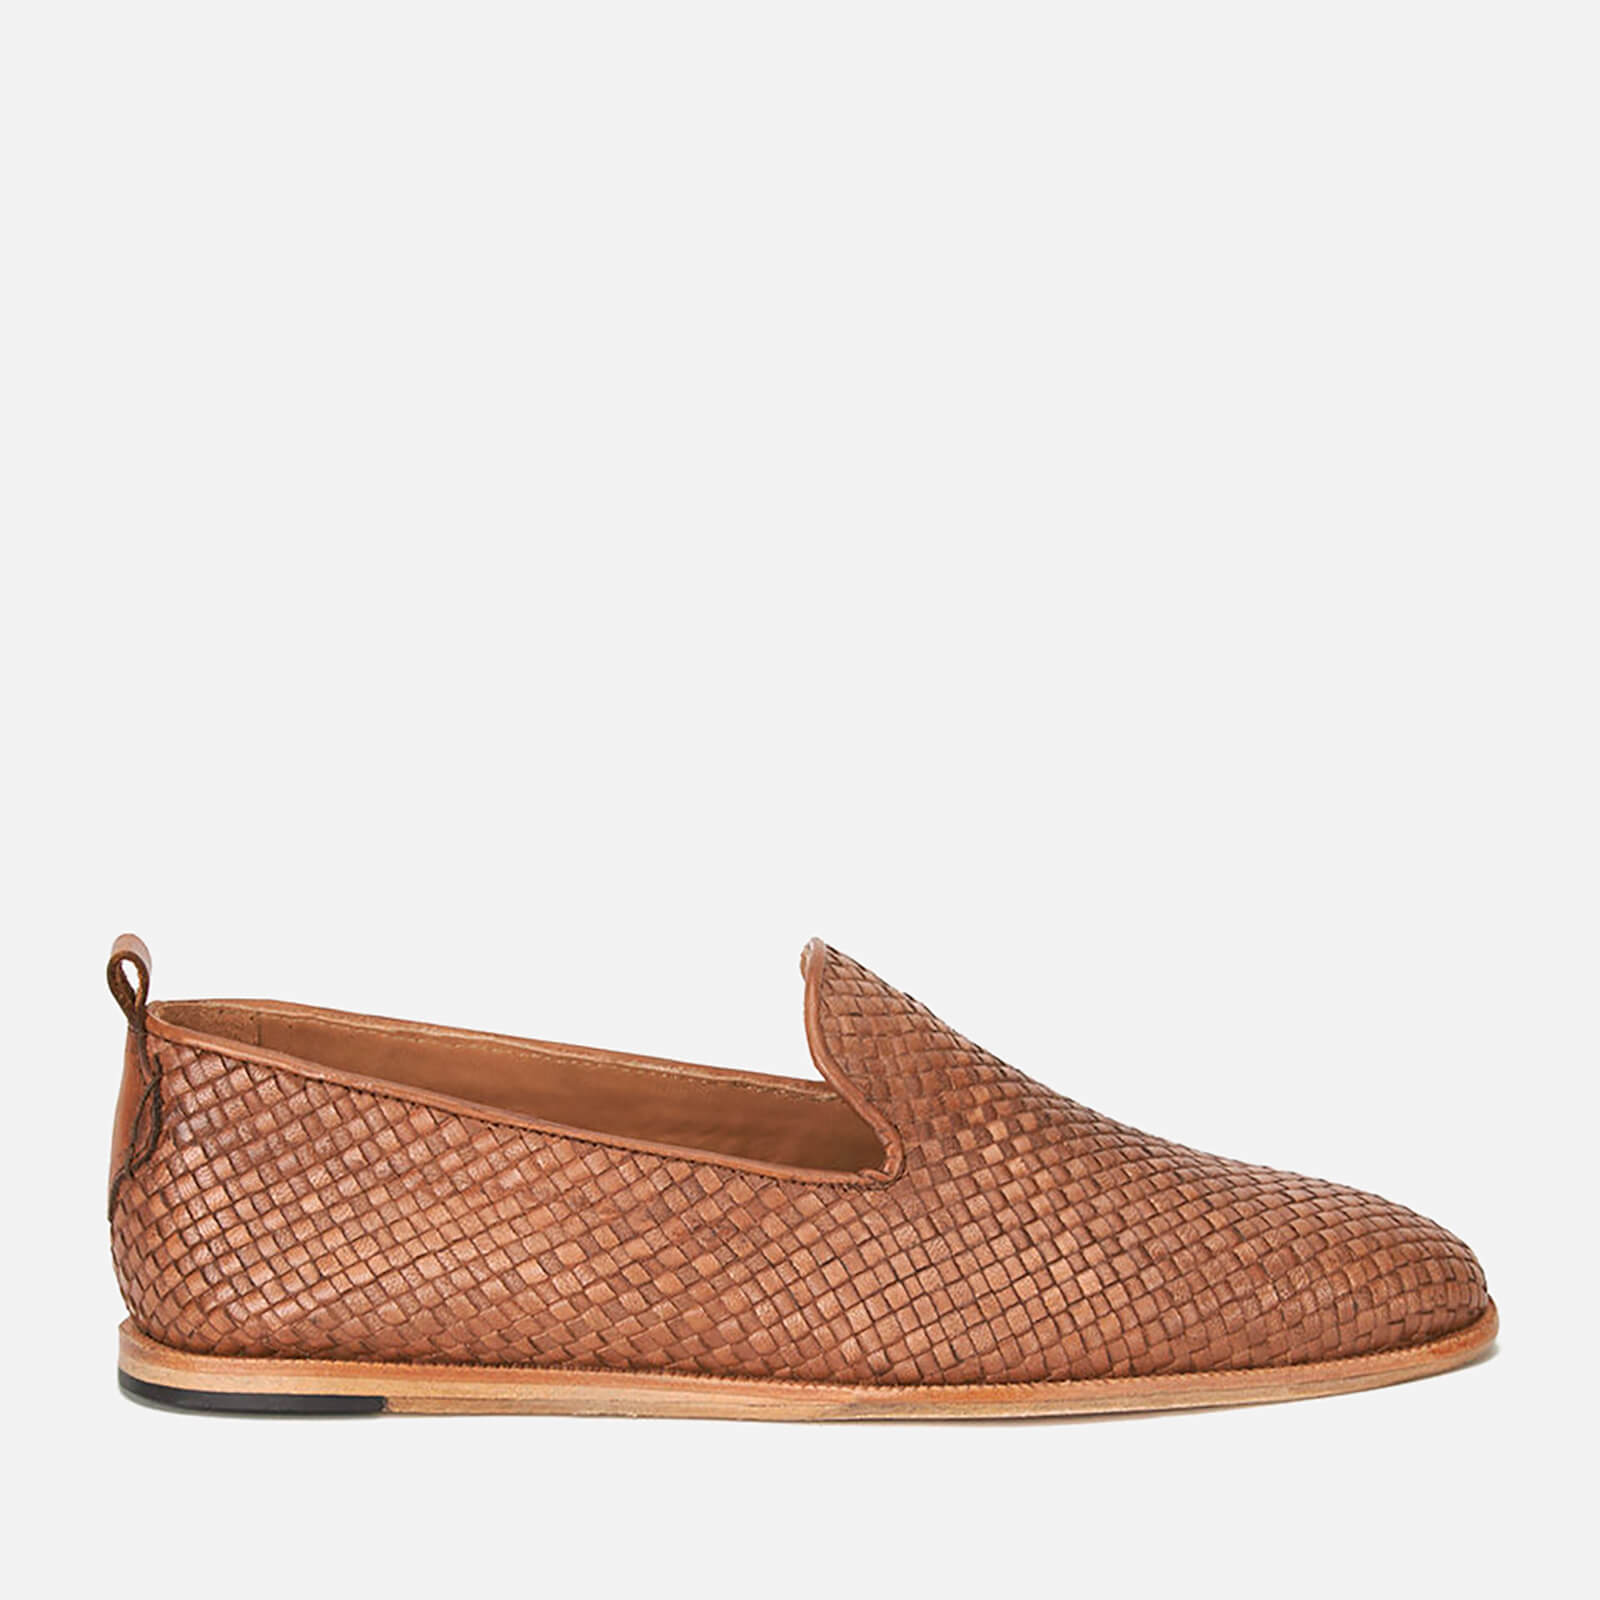 bbfd2ee4648ee7 Hudson London Men s Ipanema Weave Slip on Leather Shoes - Tan Clothing